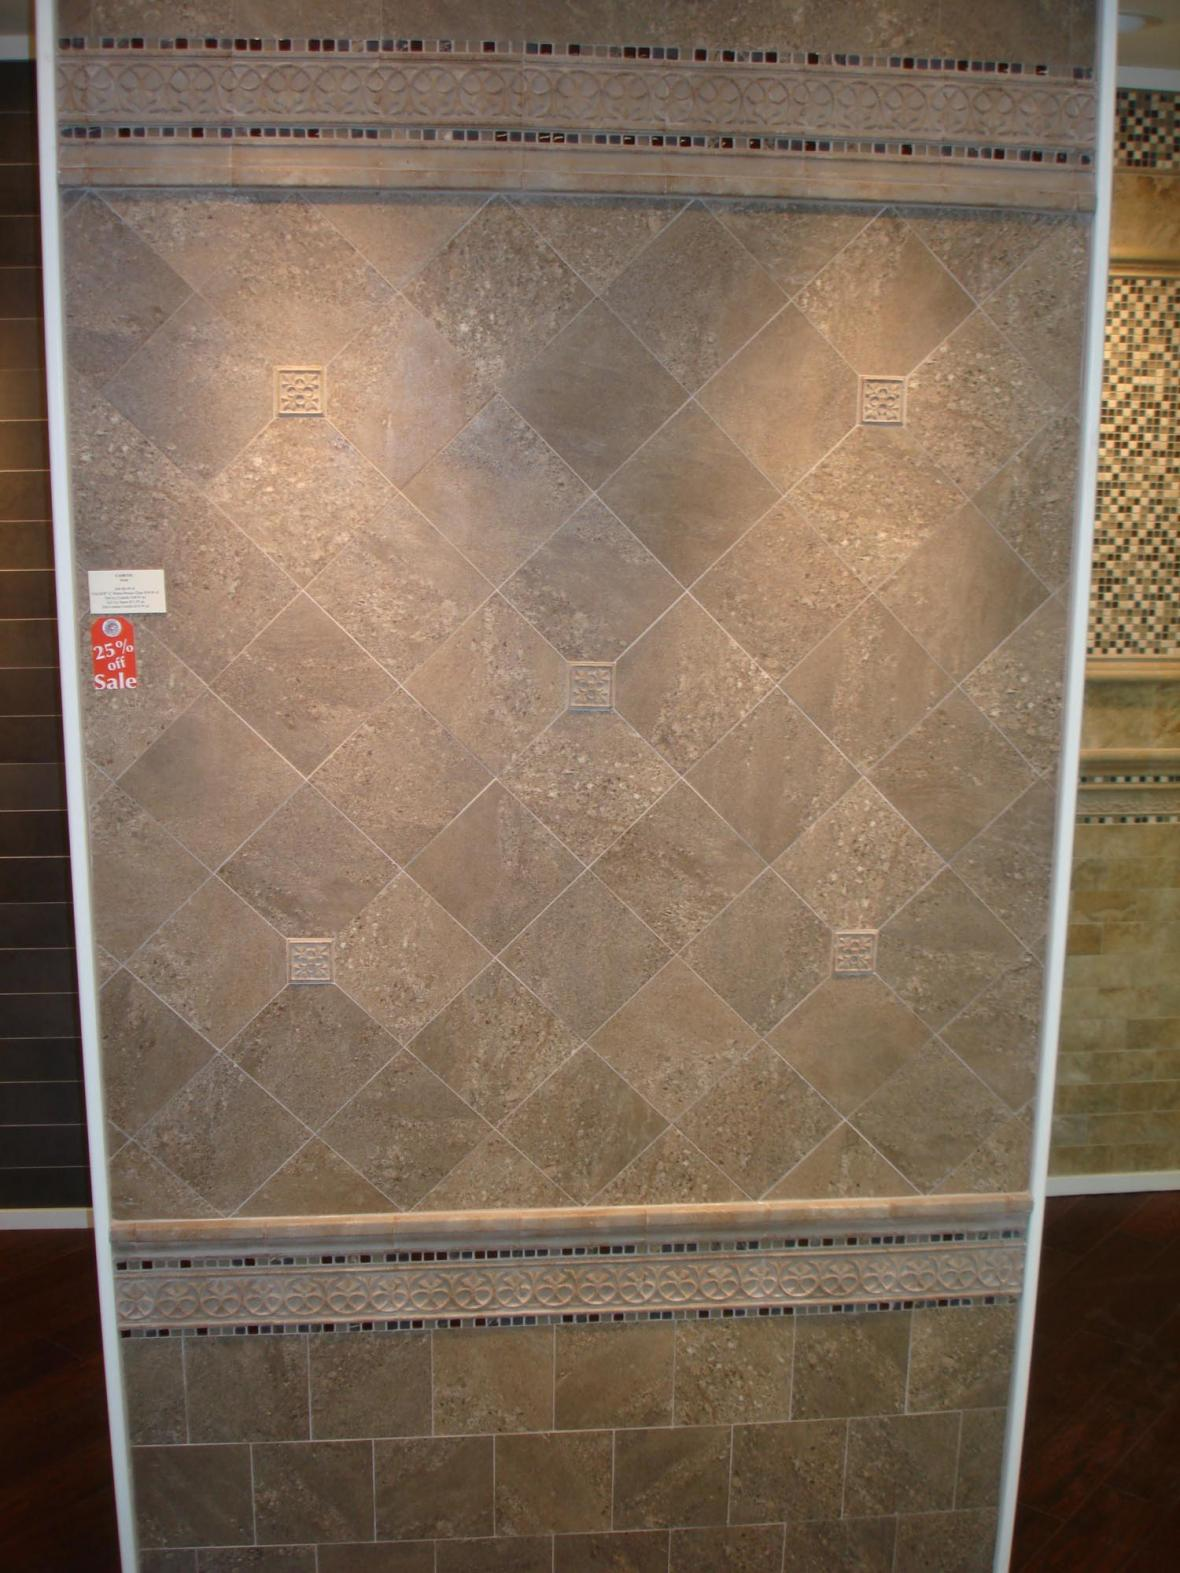 Porcelain wall tile display